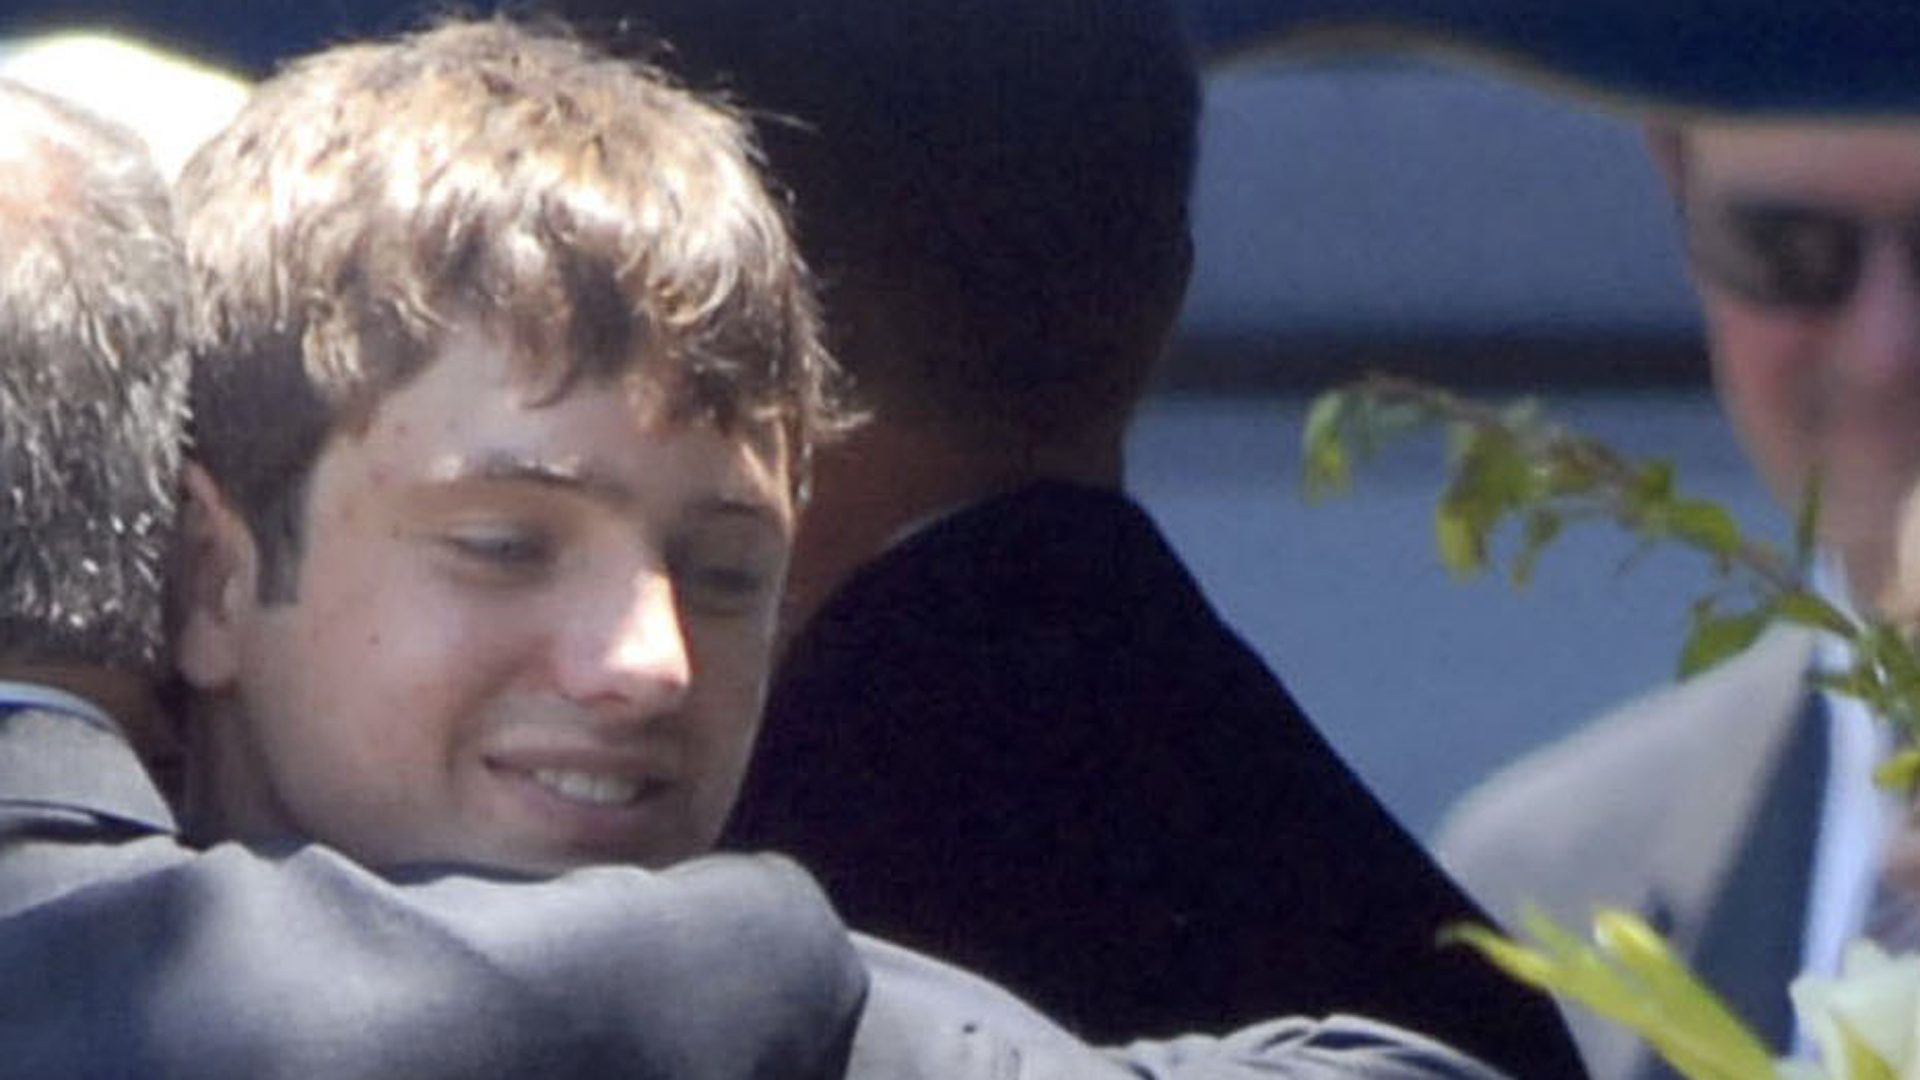 Burke Ramsey is embraced by his father at the grave of JonBenet Ramsey after a funeral service for his mother Patsy Ramsey June 29, 2006 in Marietta, Georgia. (Credit: Barry Williams/Getty Images)